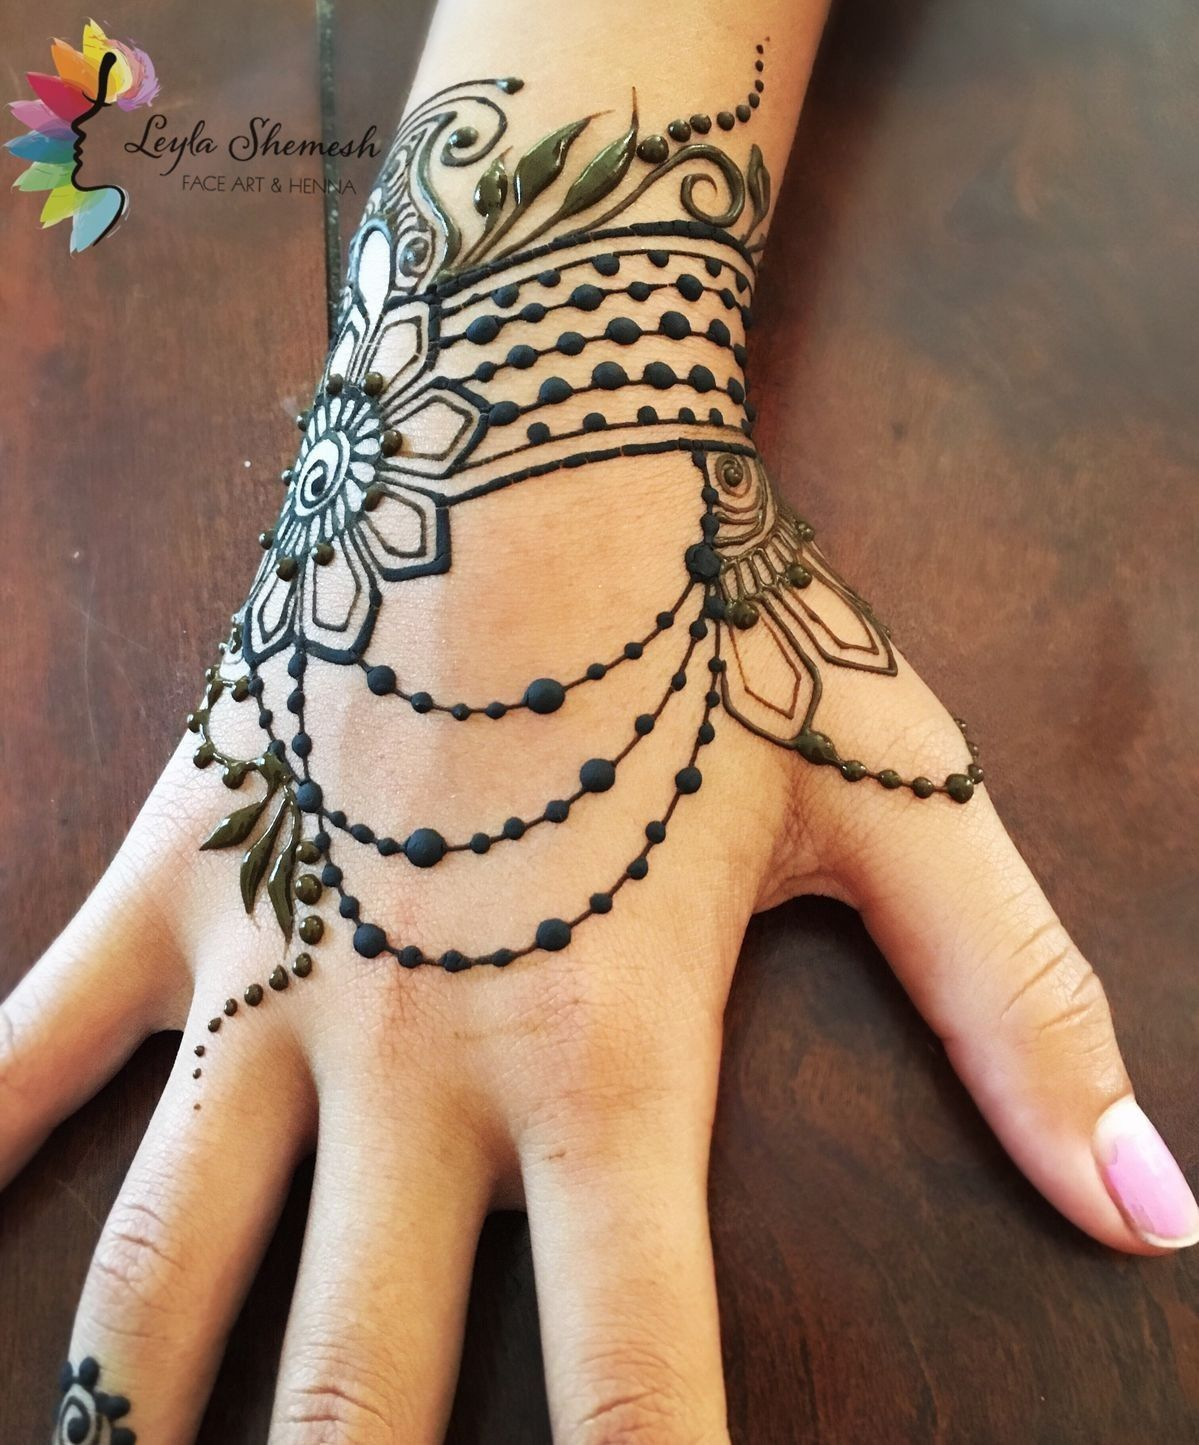 Pin By Tracey Anderson On Braids Henna Tattoo Hand Henna Tattoo